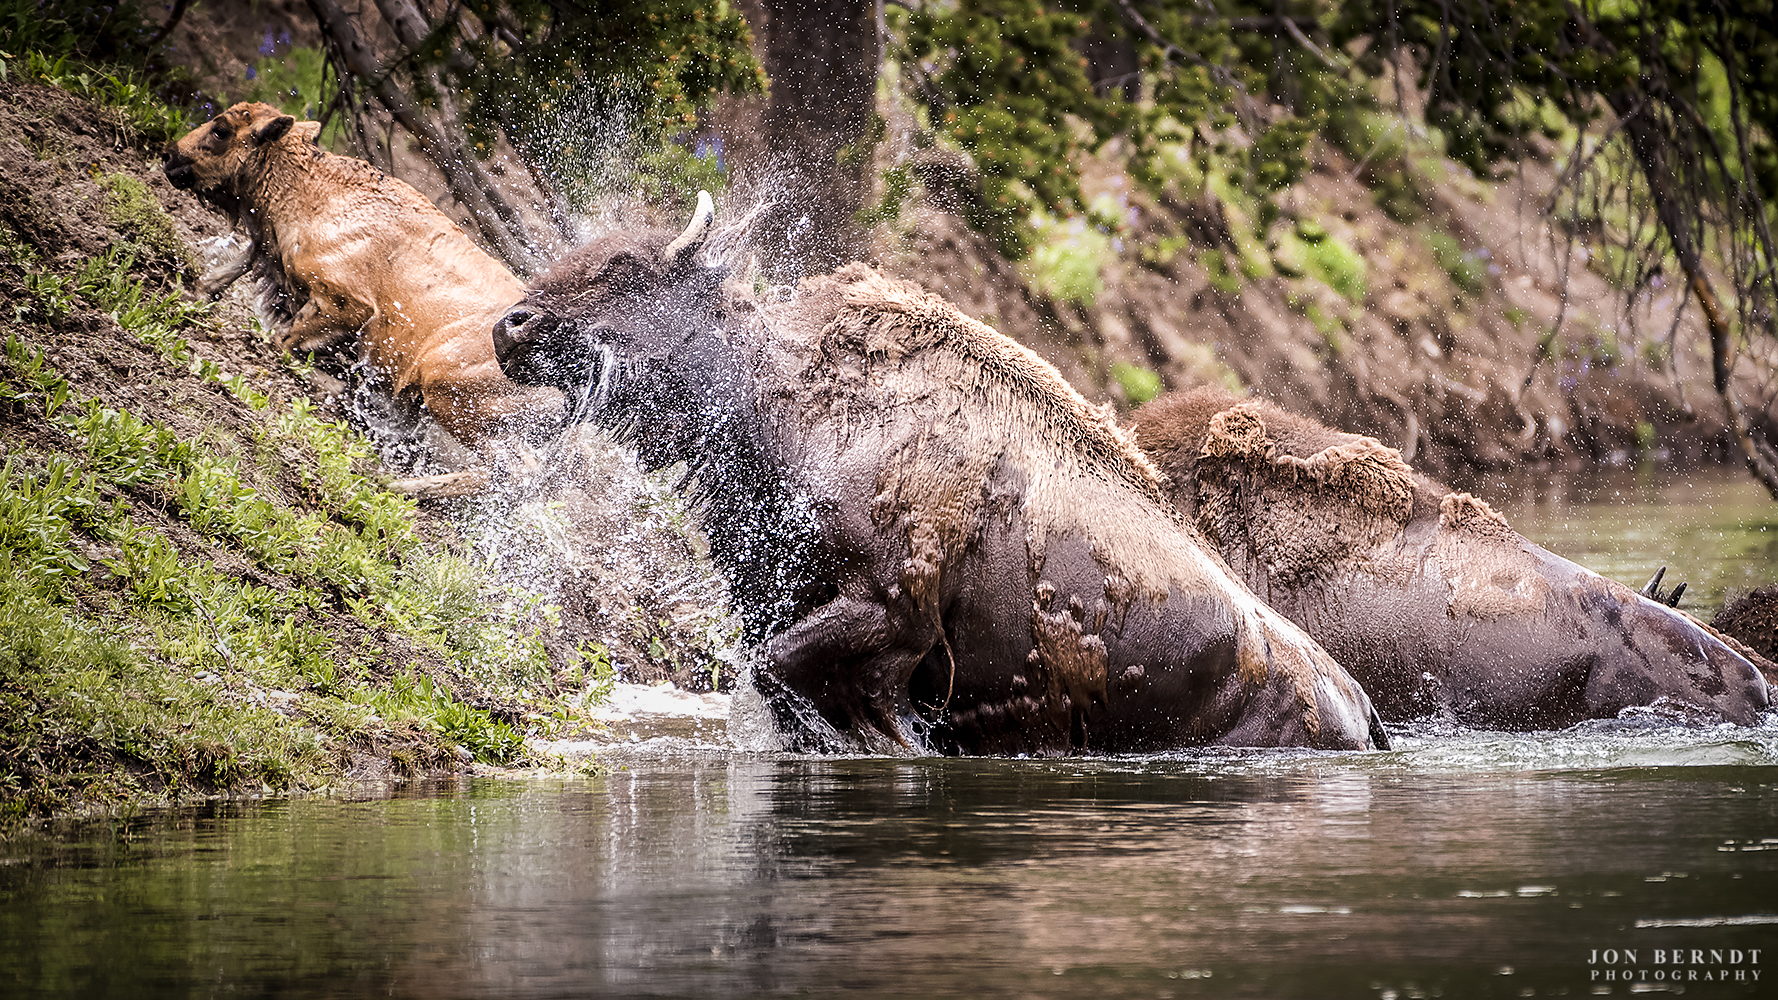 I was fortunate to come across a couple of groups of bison crossing the Yellowstone River just upstream of the Lower Falls this past June. The groups both seemed to be in a hurry to get to the river, running from the trees nearby. As they reached the river they hesitated just for a moment, then got in and started swimming. Bison are not terribly buoyant, so only a part of their head stuck up above water. As they crossed they were breathing and grunting heavily, laboring against the current, aiming upstream. One mother was herding her calf as they swam. Upon reaching the other side they shook off gallons of water and continued on into Hayden Valley.   Click here  for information on ordering a print of t his photograph.